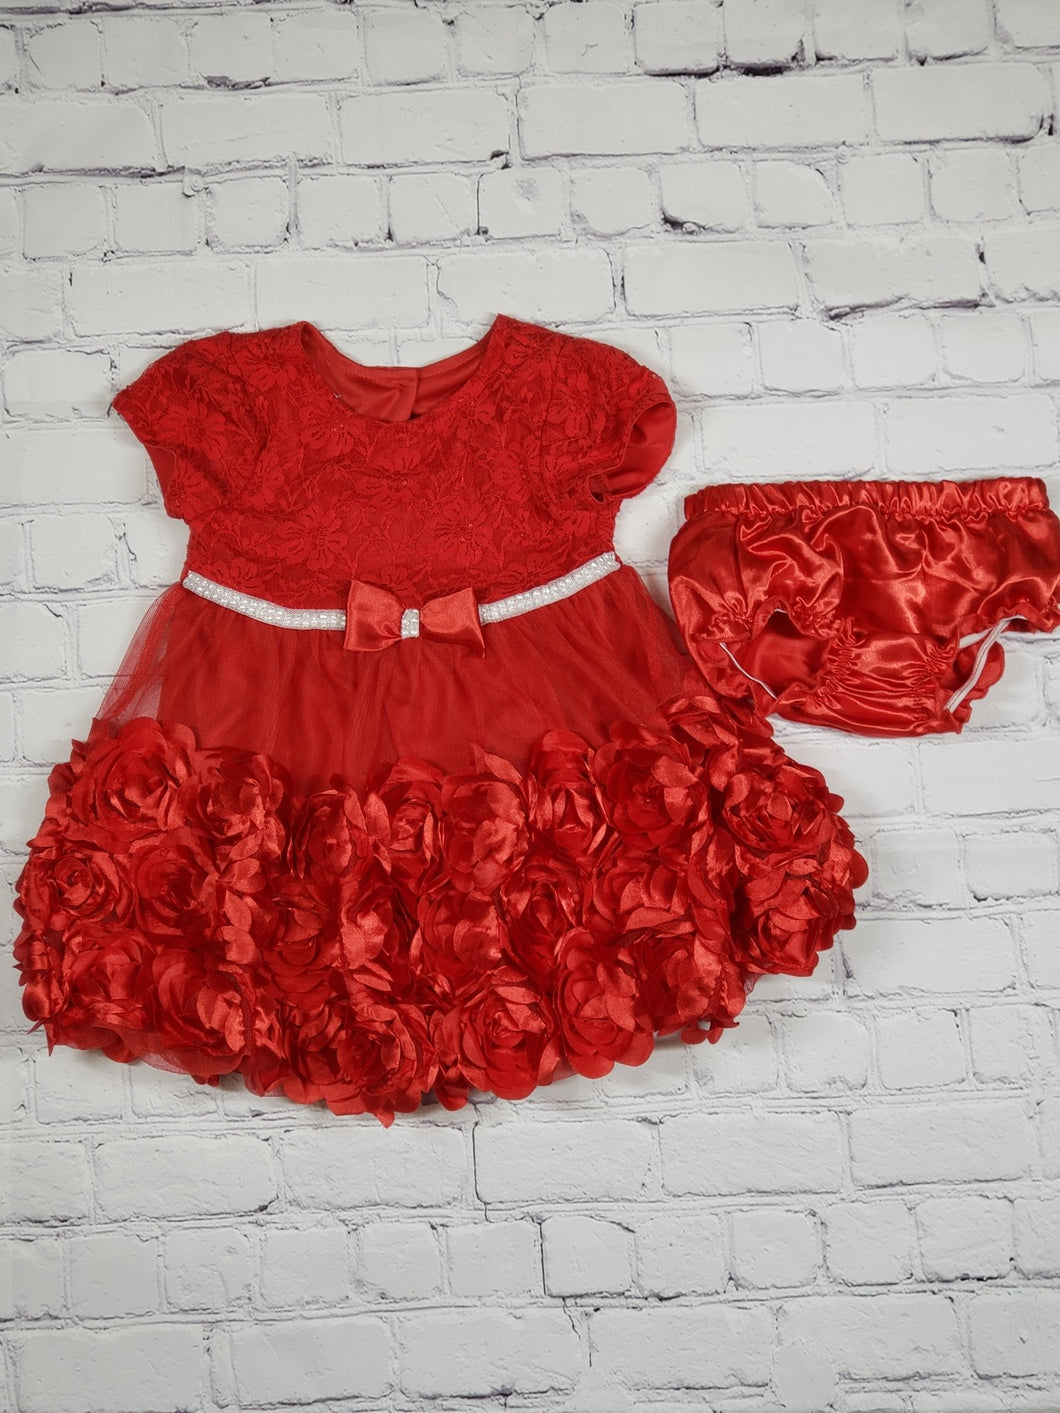 Rossy Red Dress (used) - LilChic BabyBug Boutique LLC